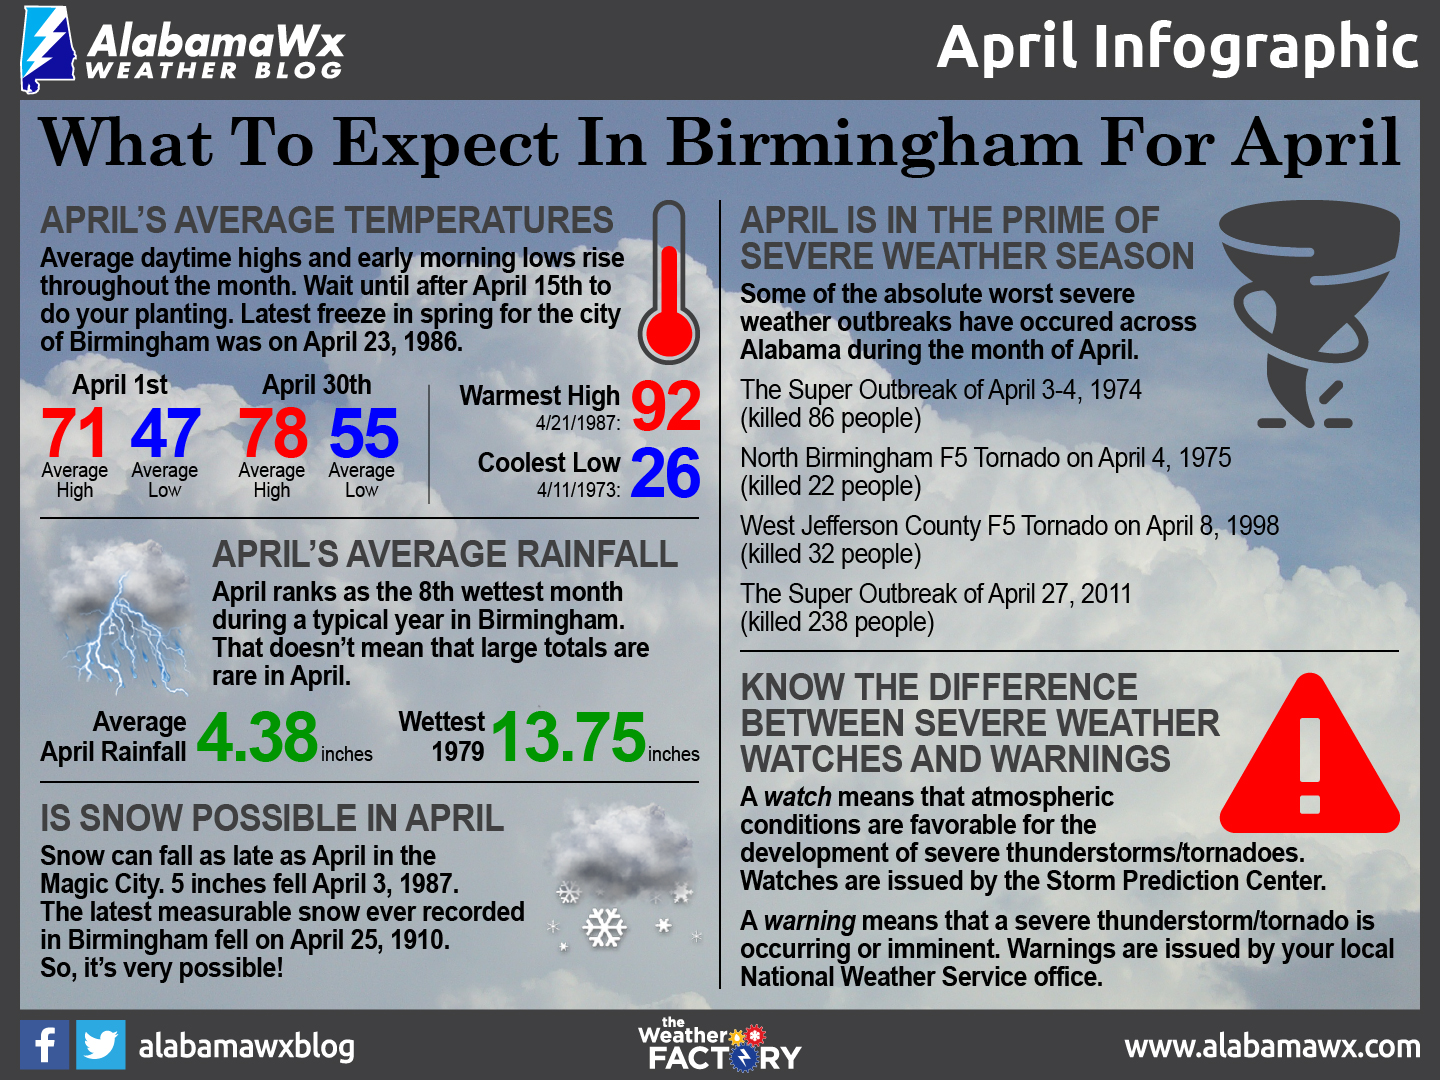 March Infographic by AlabamaWx's Scott Martin